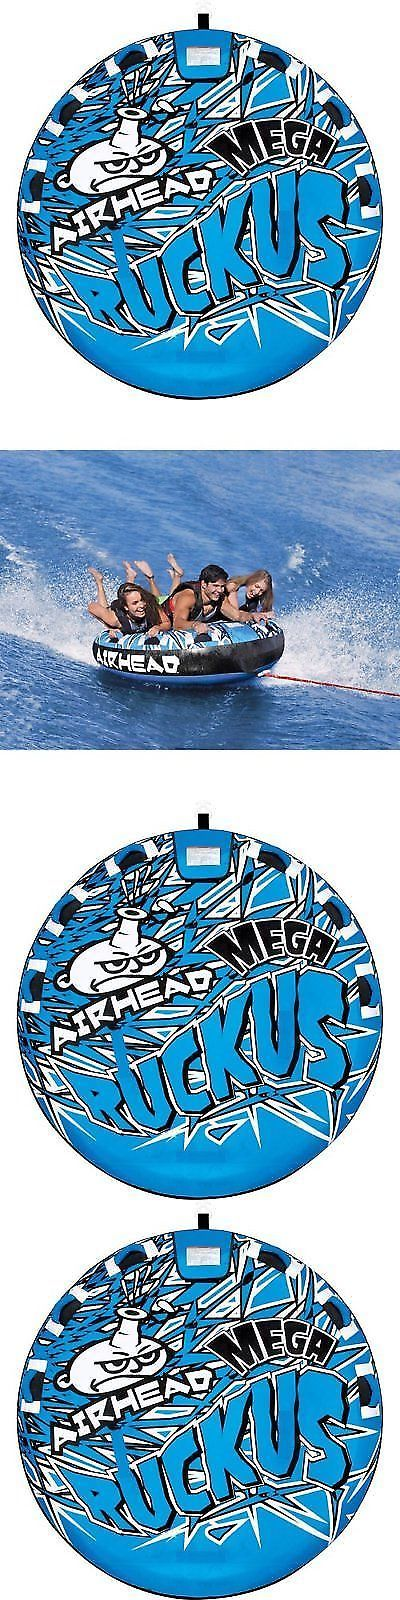 Tubing and Towables 71169: Inflatable Water Towable Tube Airhead 3 Rider Person Sportsstuff Deck Boat Lake -> BUY IT NOW ONLY: $108.51 on eBay!